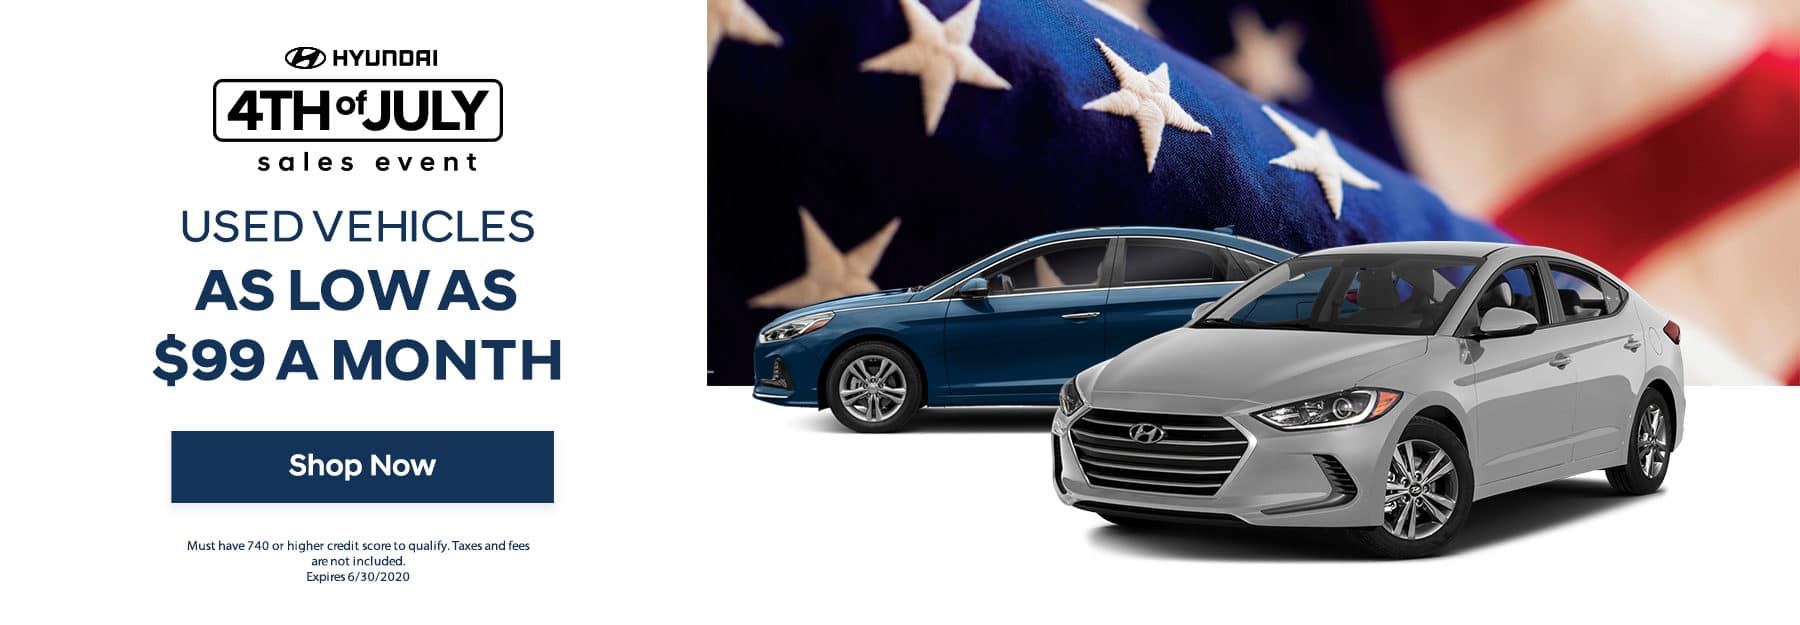 Used Vehicle 4th of July Sale